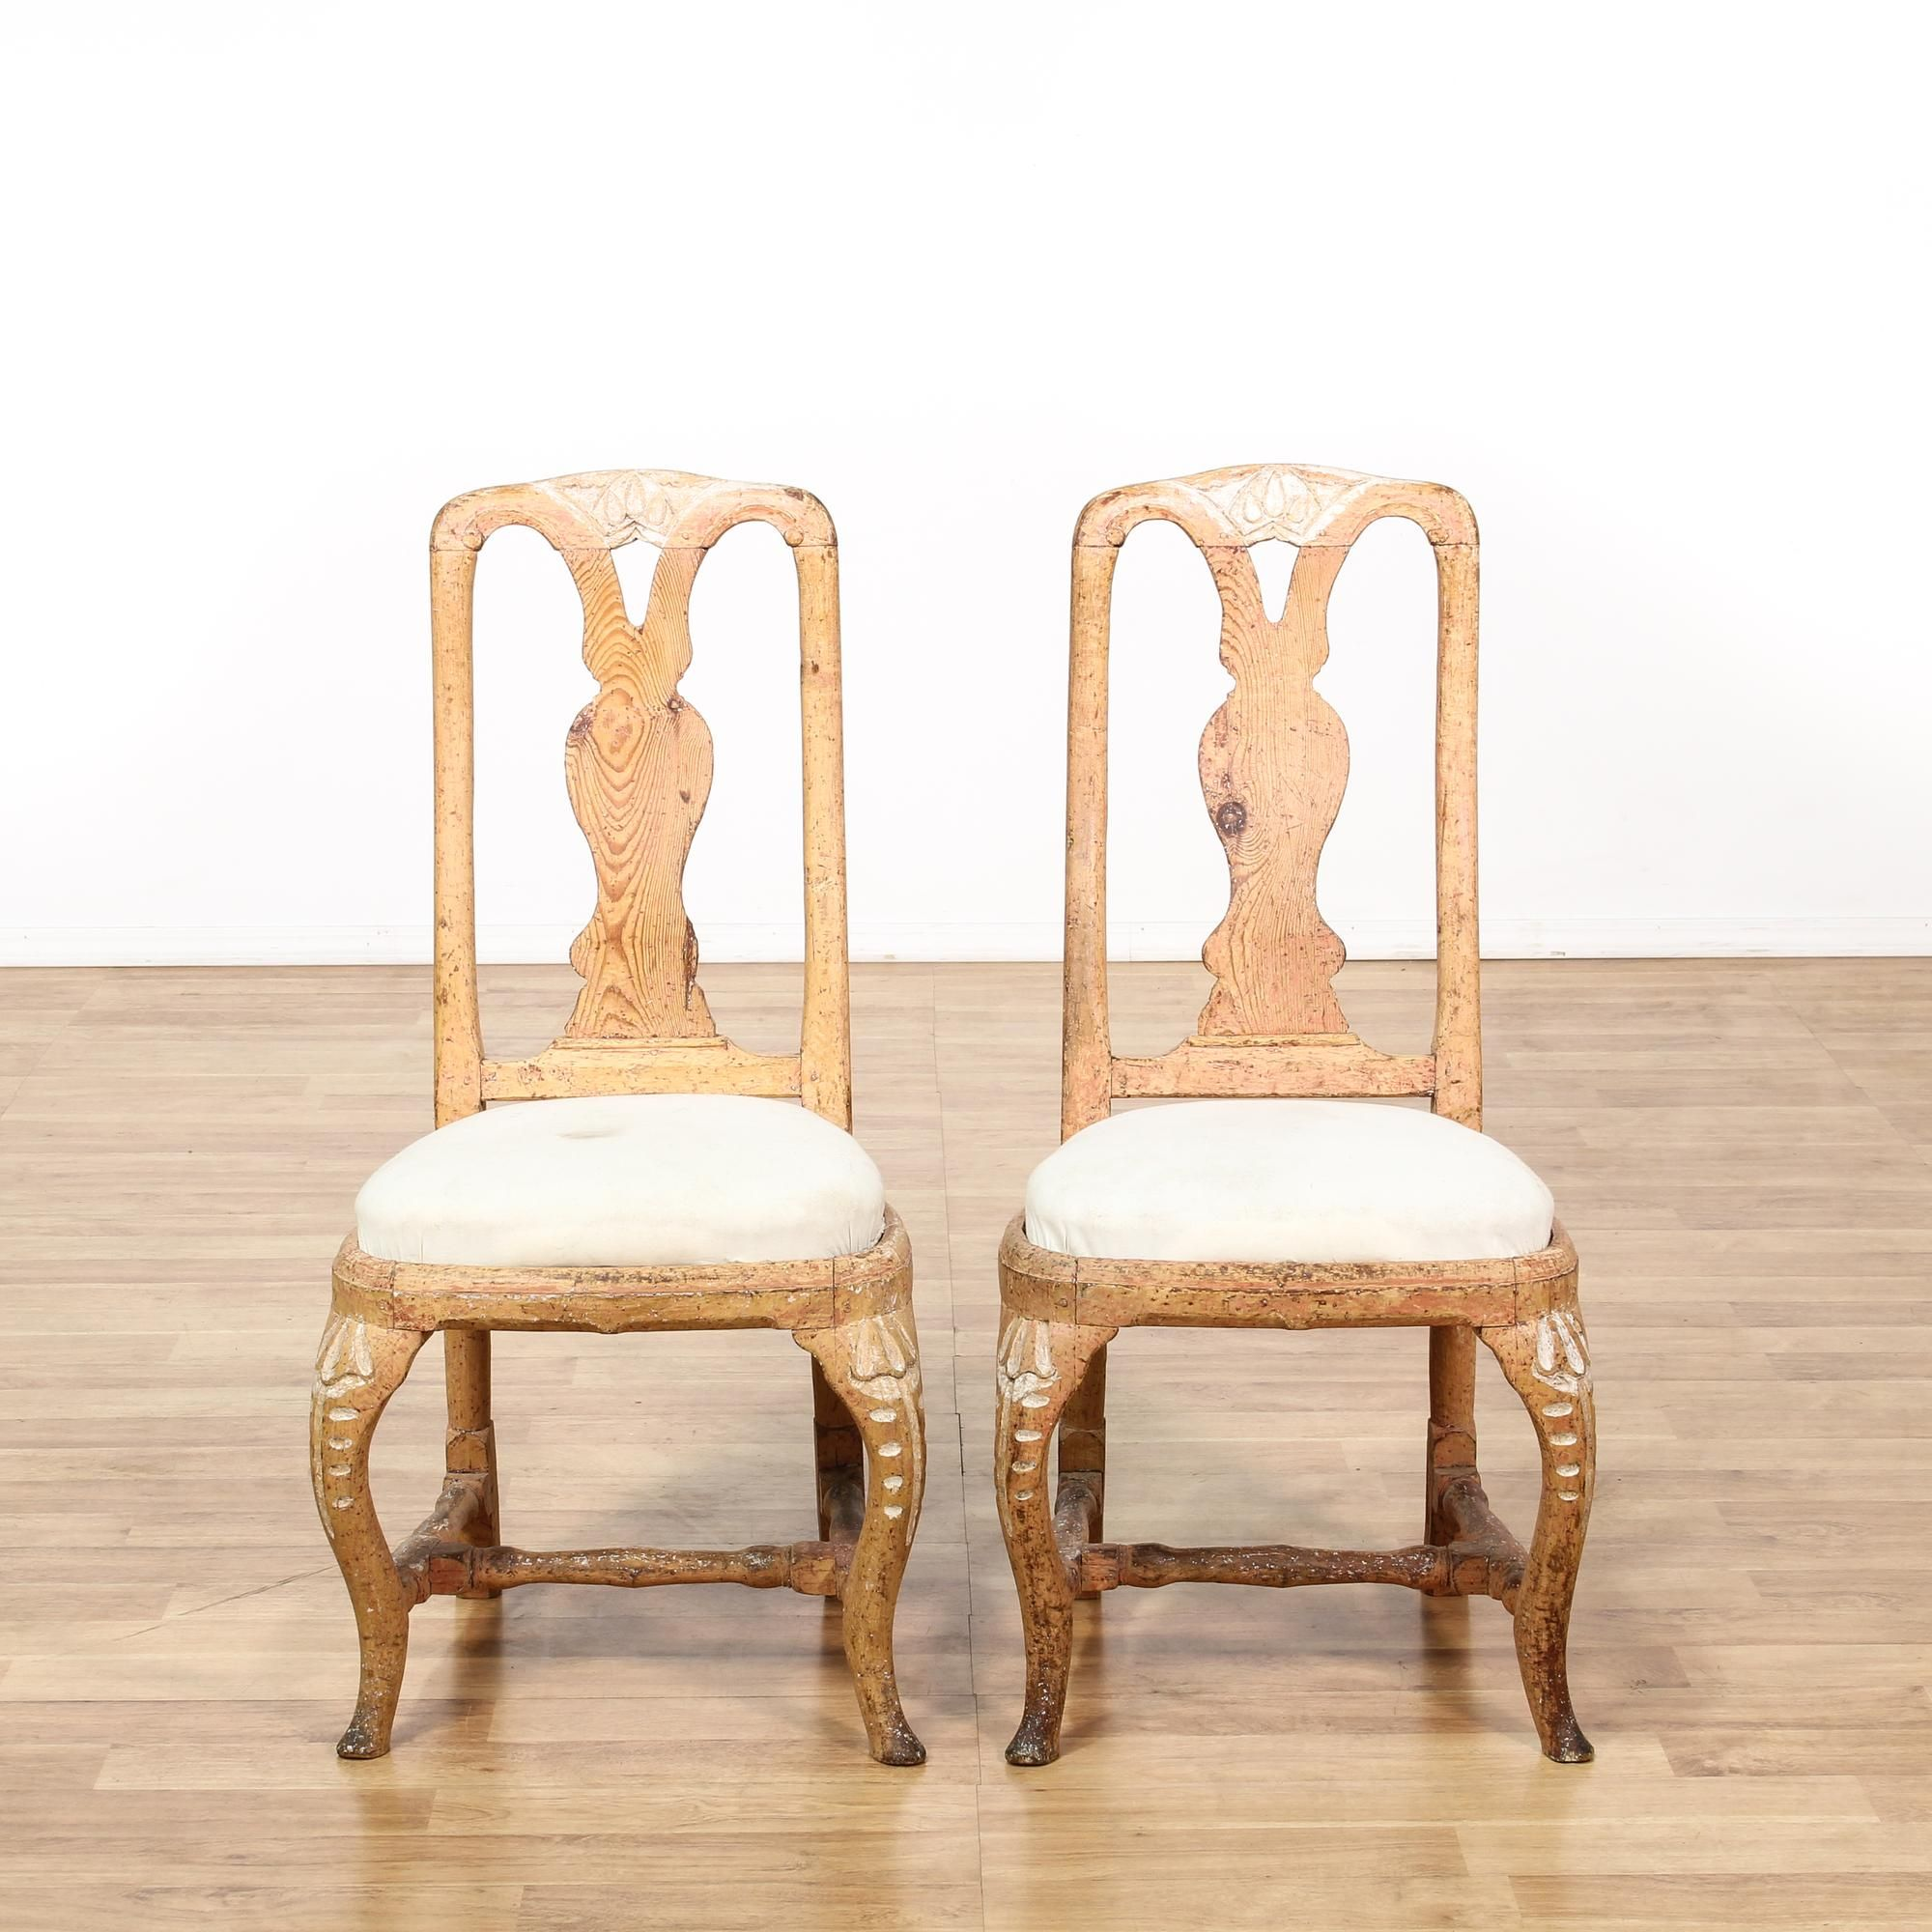 This Pair Of French Provincial Chairs Are Featured In A Solid Wood With A  Raw Light